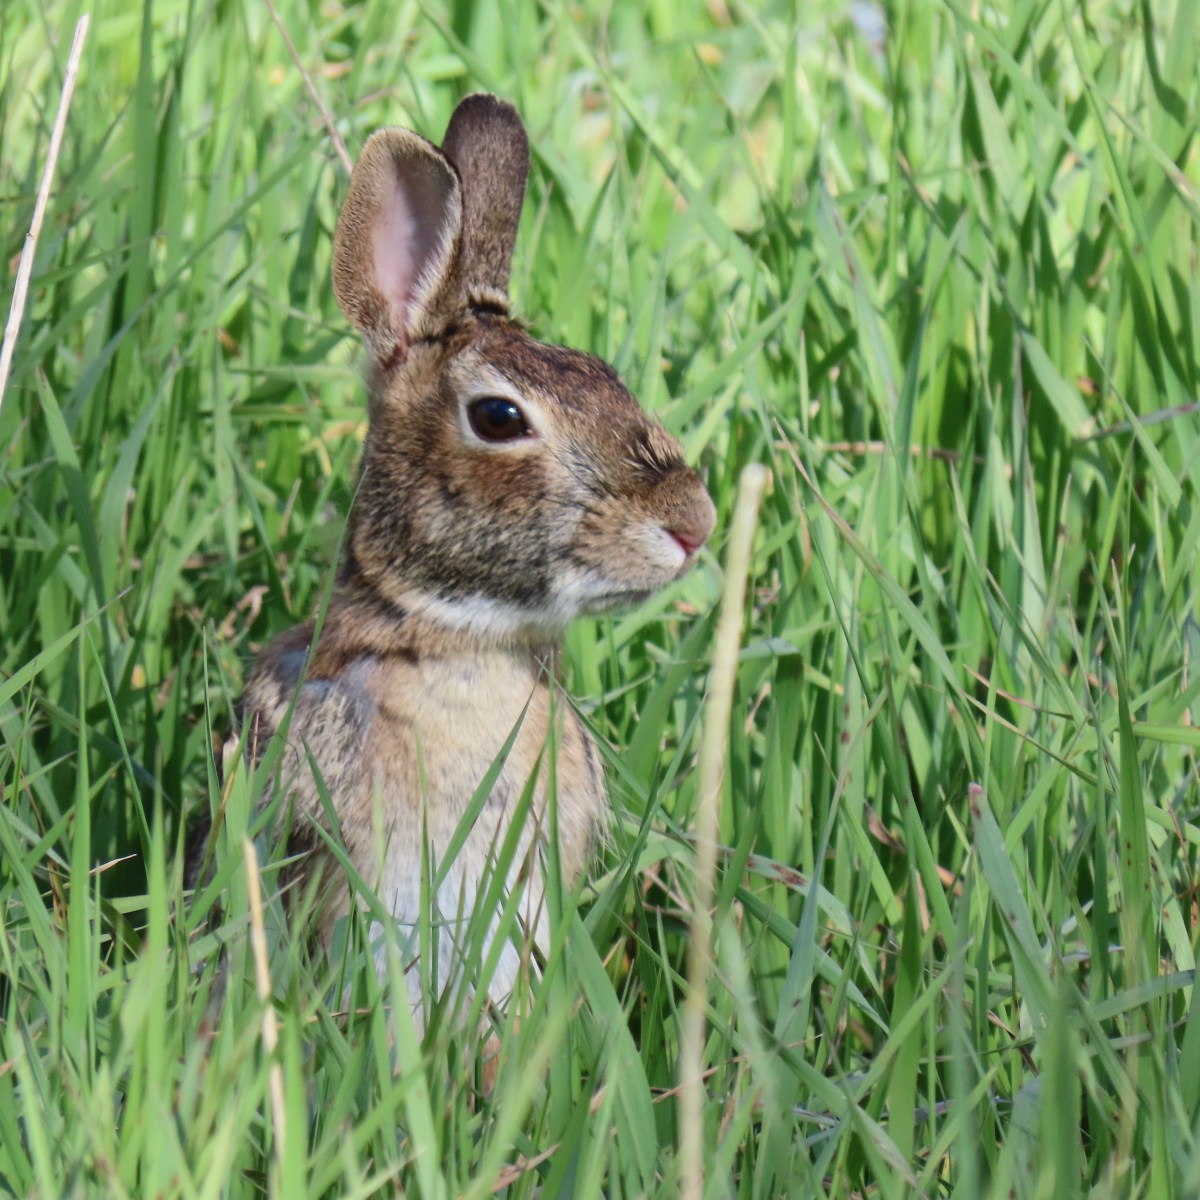 A meadow rabbit stands still with ears pointing up in the grass, looking alert